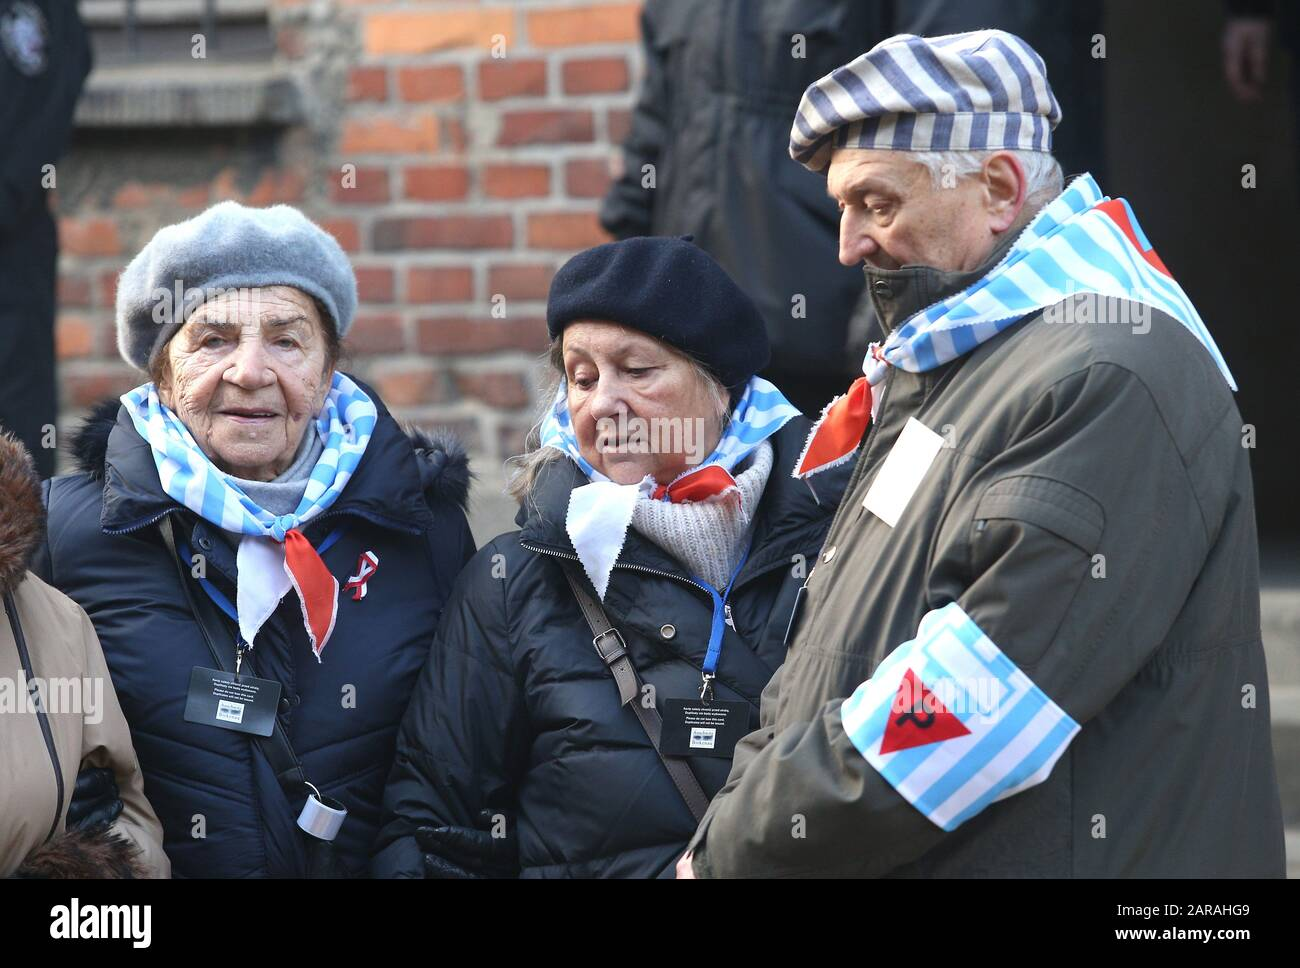 Oswiecim, Poland. 27th Jan, 2020. Former prisoners of the Auschwitz-Birkenau concentration camp. 75th anniversary of Auschwitz liberation and Holocaust Remembrance Day. The biggest German Nazi concentration and extermination camp KL Auschwitz-Birkenau was liberated by the Red Army on 27 January 1945. Credit: Damian Klamka/ZUMA Wire/Alamy Live News Stock Photo